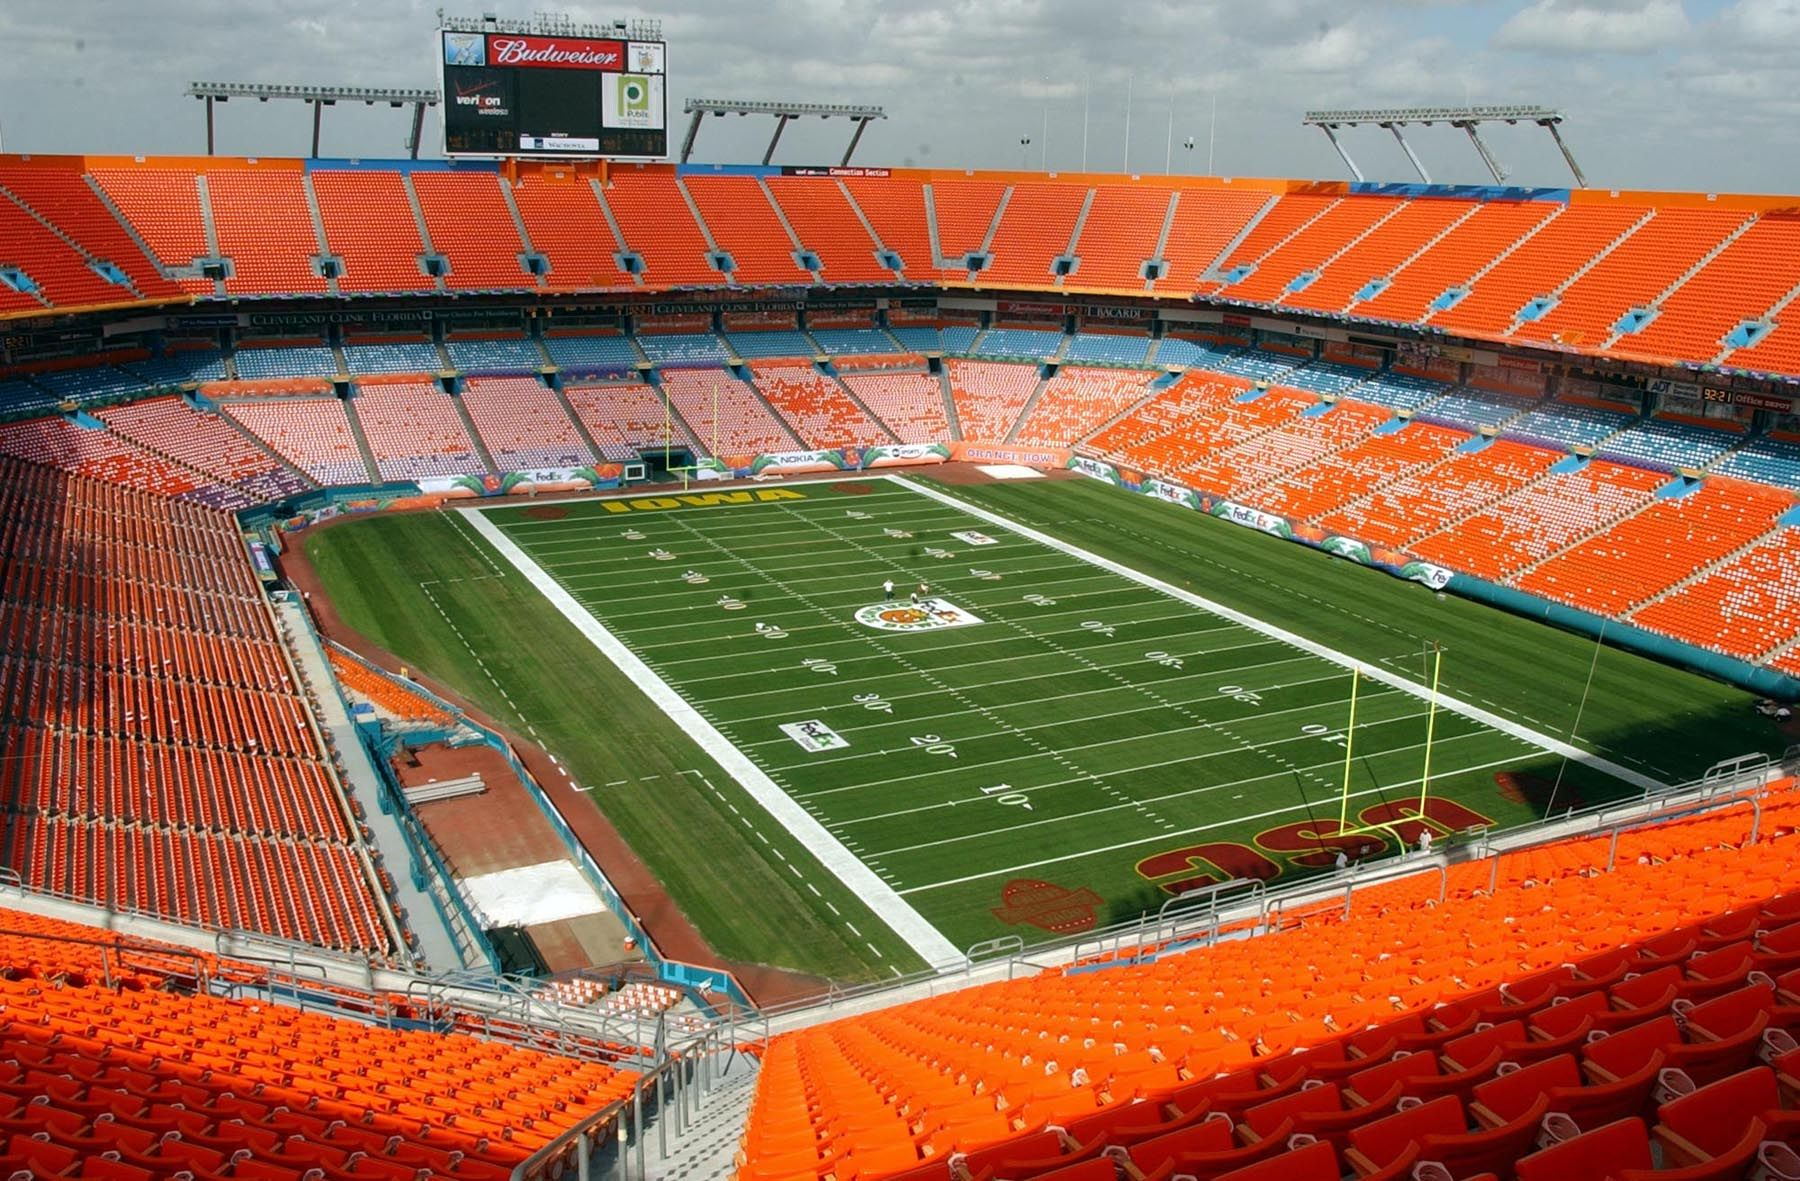 The Orange Bowl Estadios